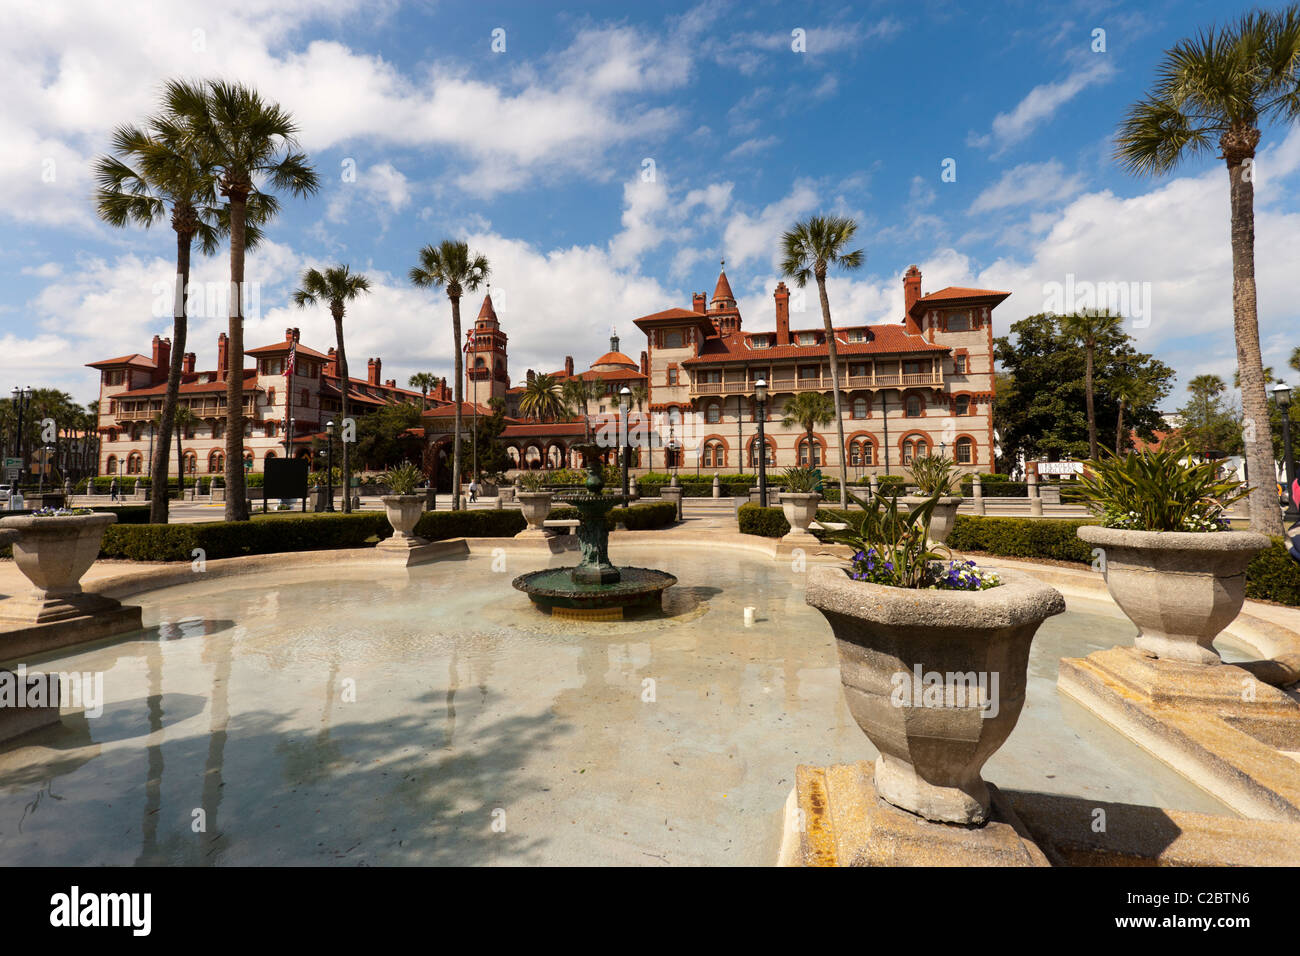 Flagler College, St Augustine, Florida. It is a private four-year liberal arts college - Stock Image